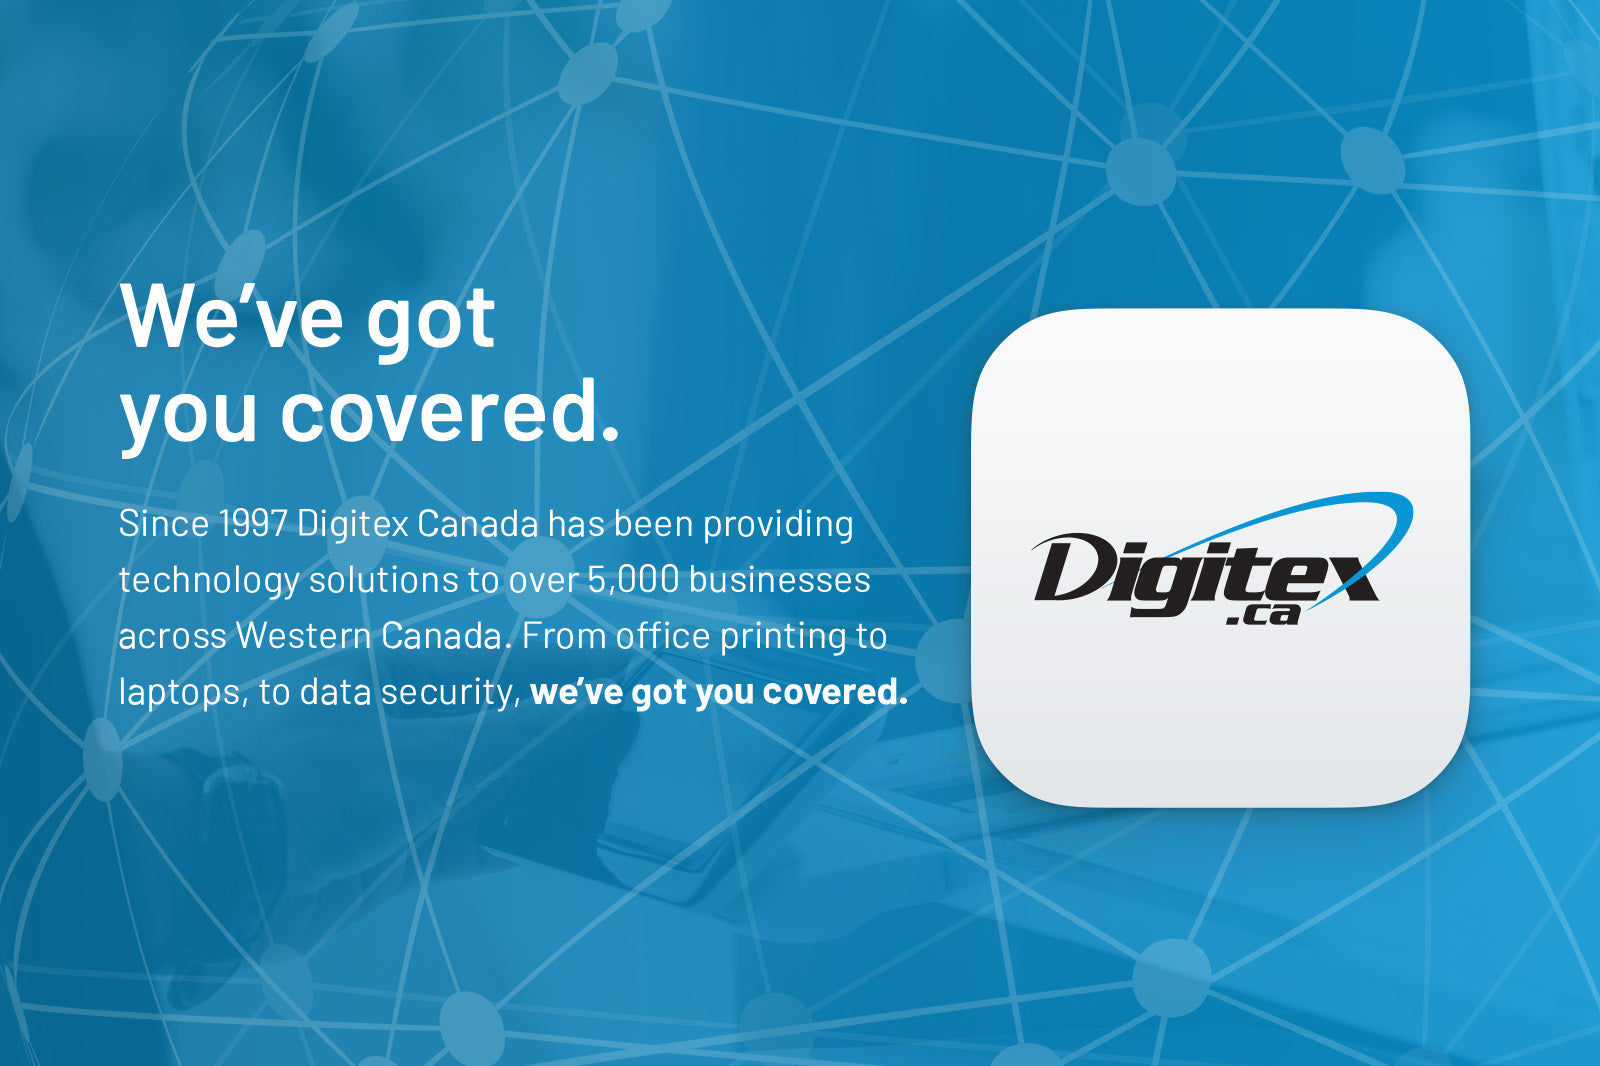 We've got you covered. Since 1997 Digitex Canada has been providing technology solutions to over 5,000 businesses across Western Canada. From office printing to laptops, to data security, we've got you covered.